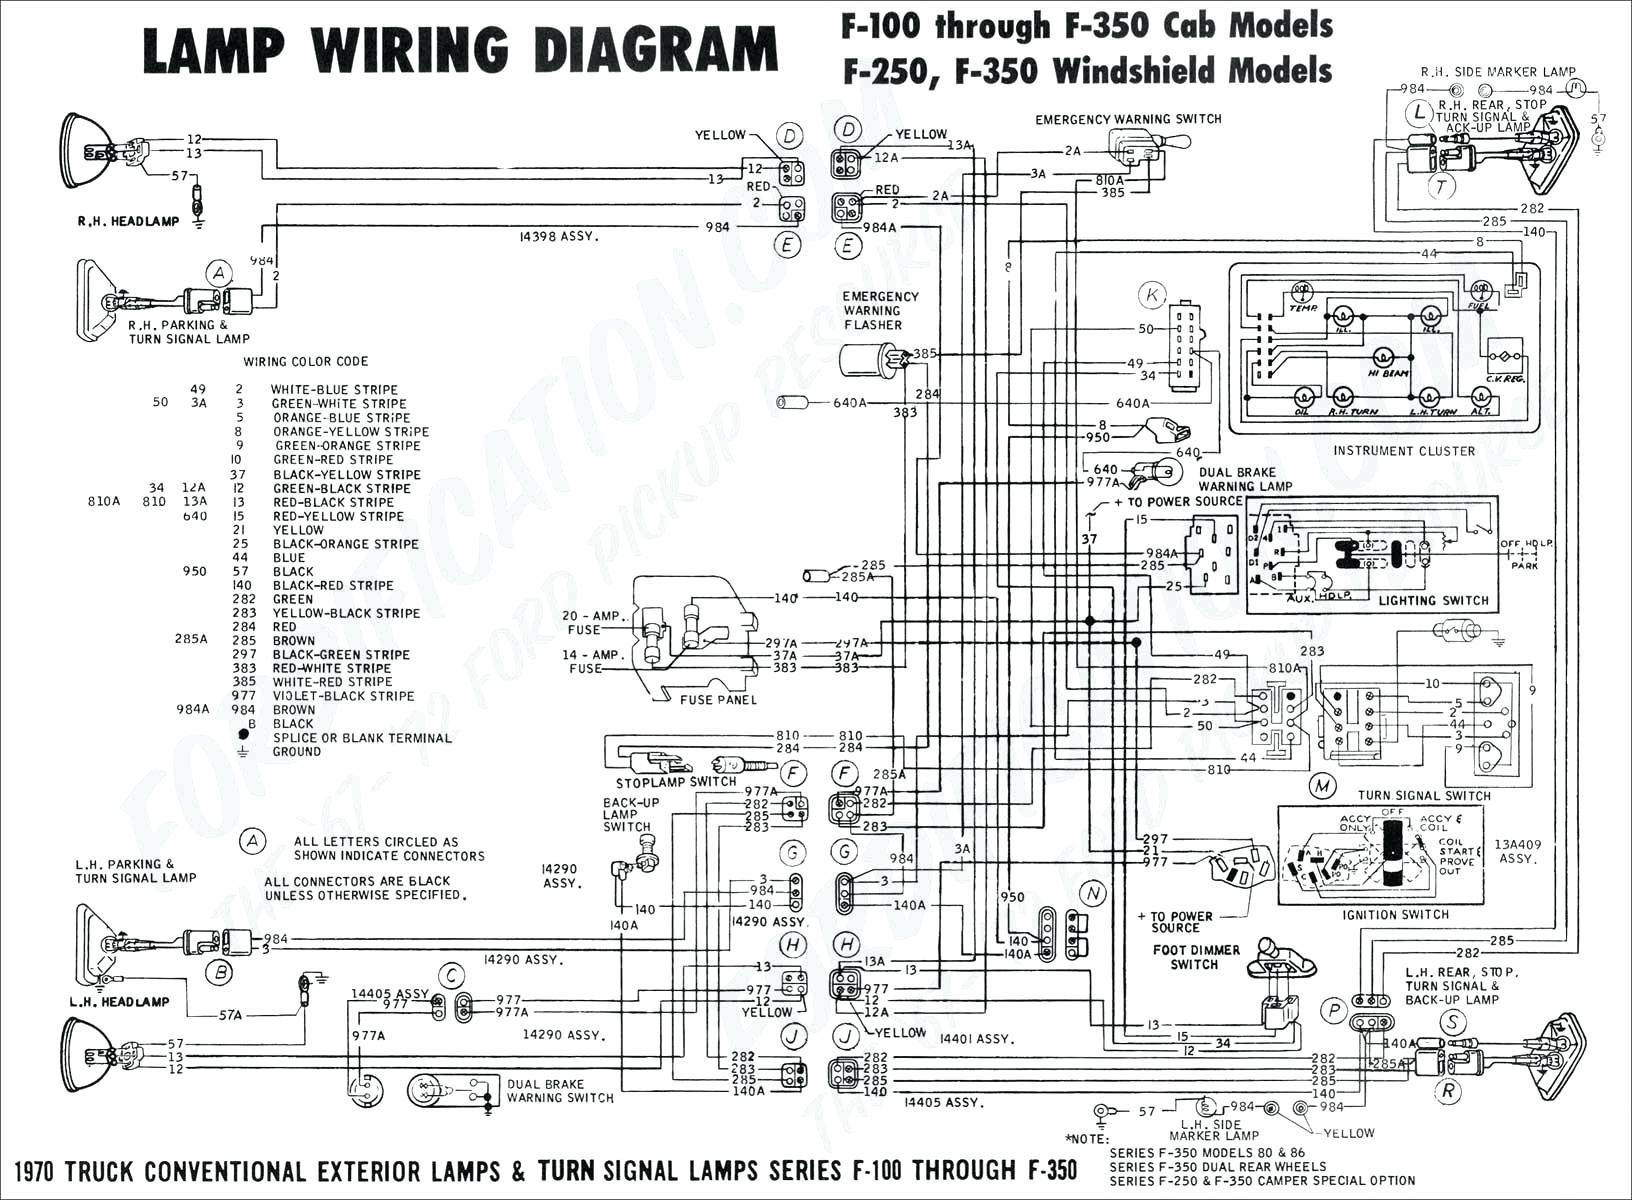 wiring diagram for utility trailer with electric brakes Collection-Wiring Diagram Trailer Electric Brakes Inspirationa Wiring Diagram for Utility Trailer with Electric Brakes Refrence 14-r